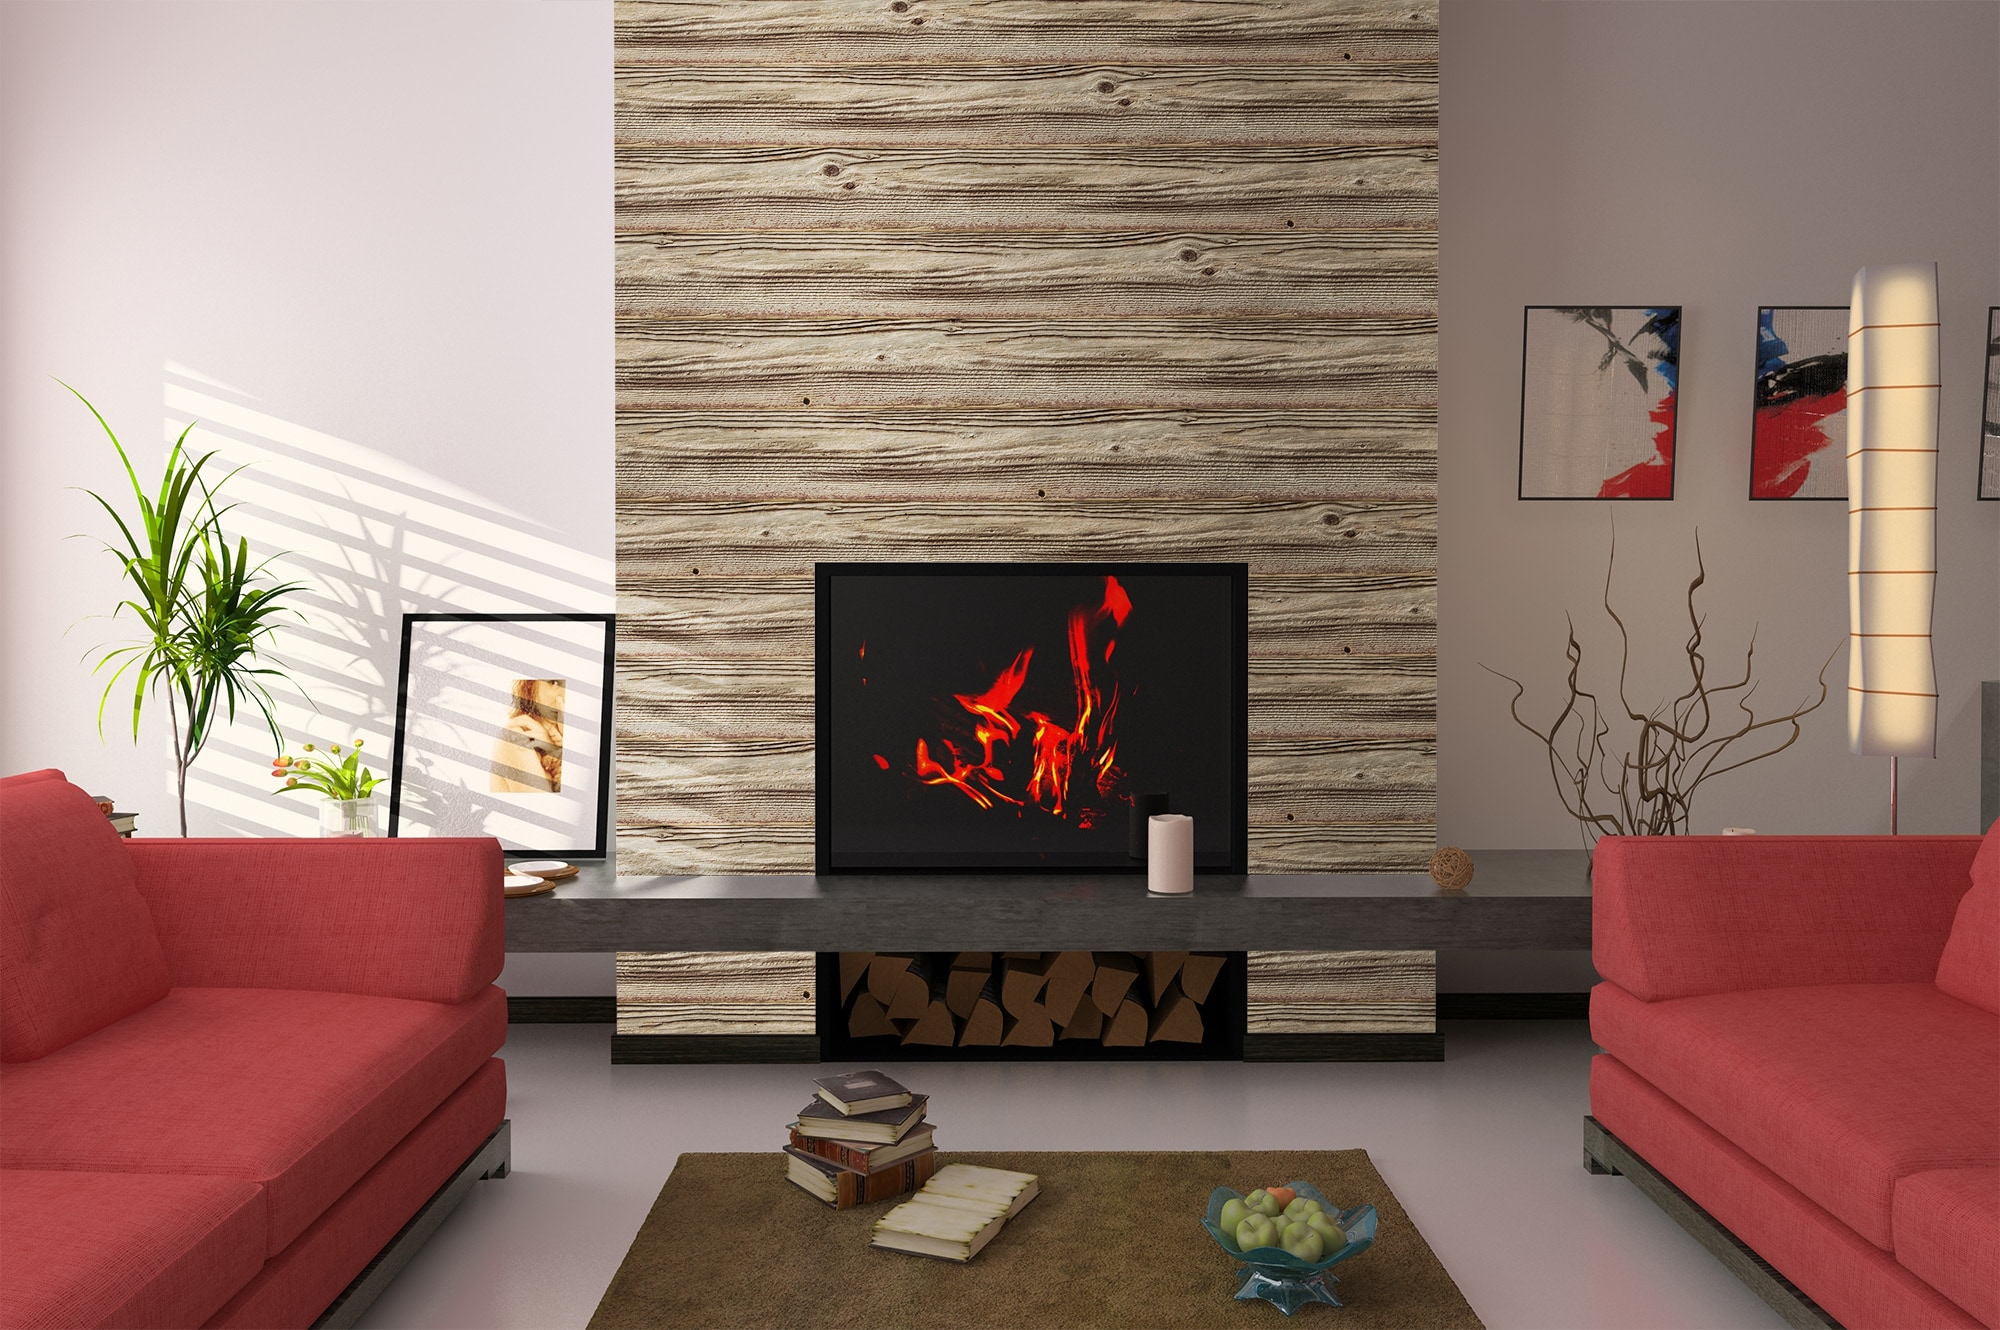 carrick wall paneling decorative print collection old barn wood